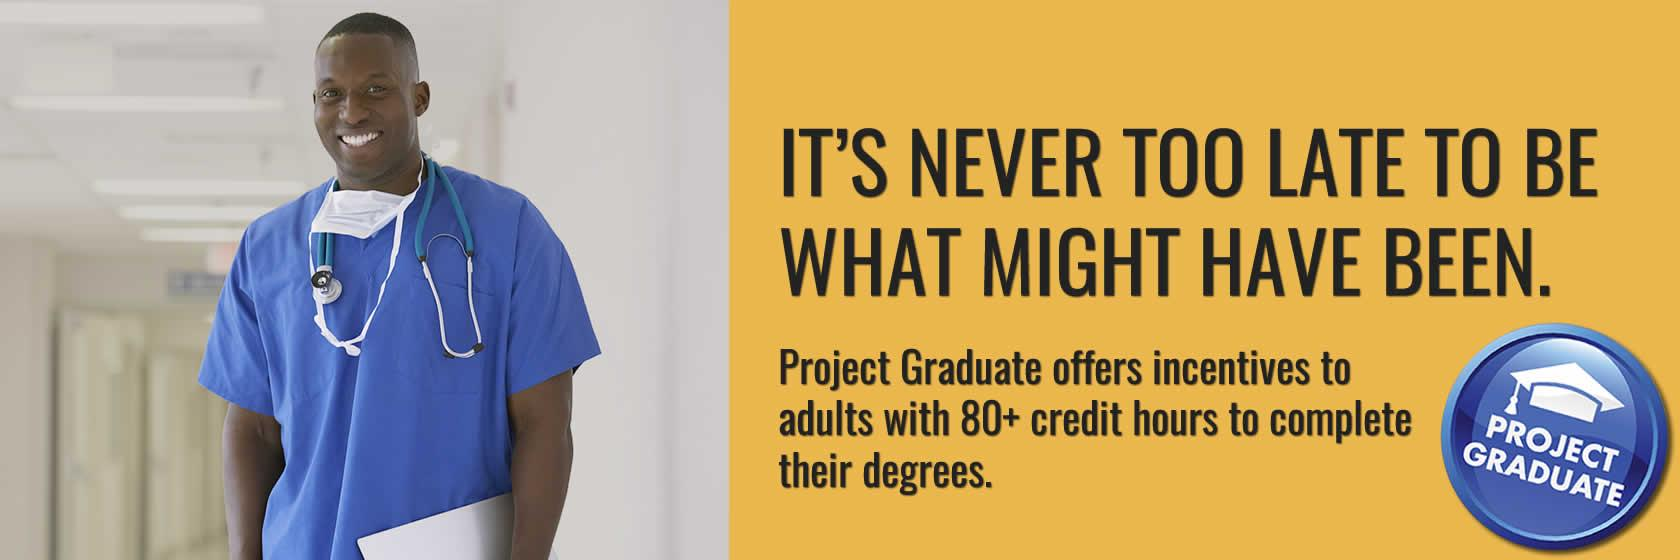 It's never too late to return to college. Learn about Kentucky's Project Graduate program for adults with 80+ credit hours.